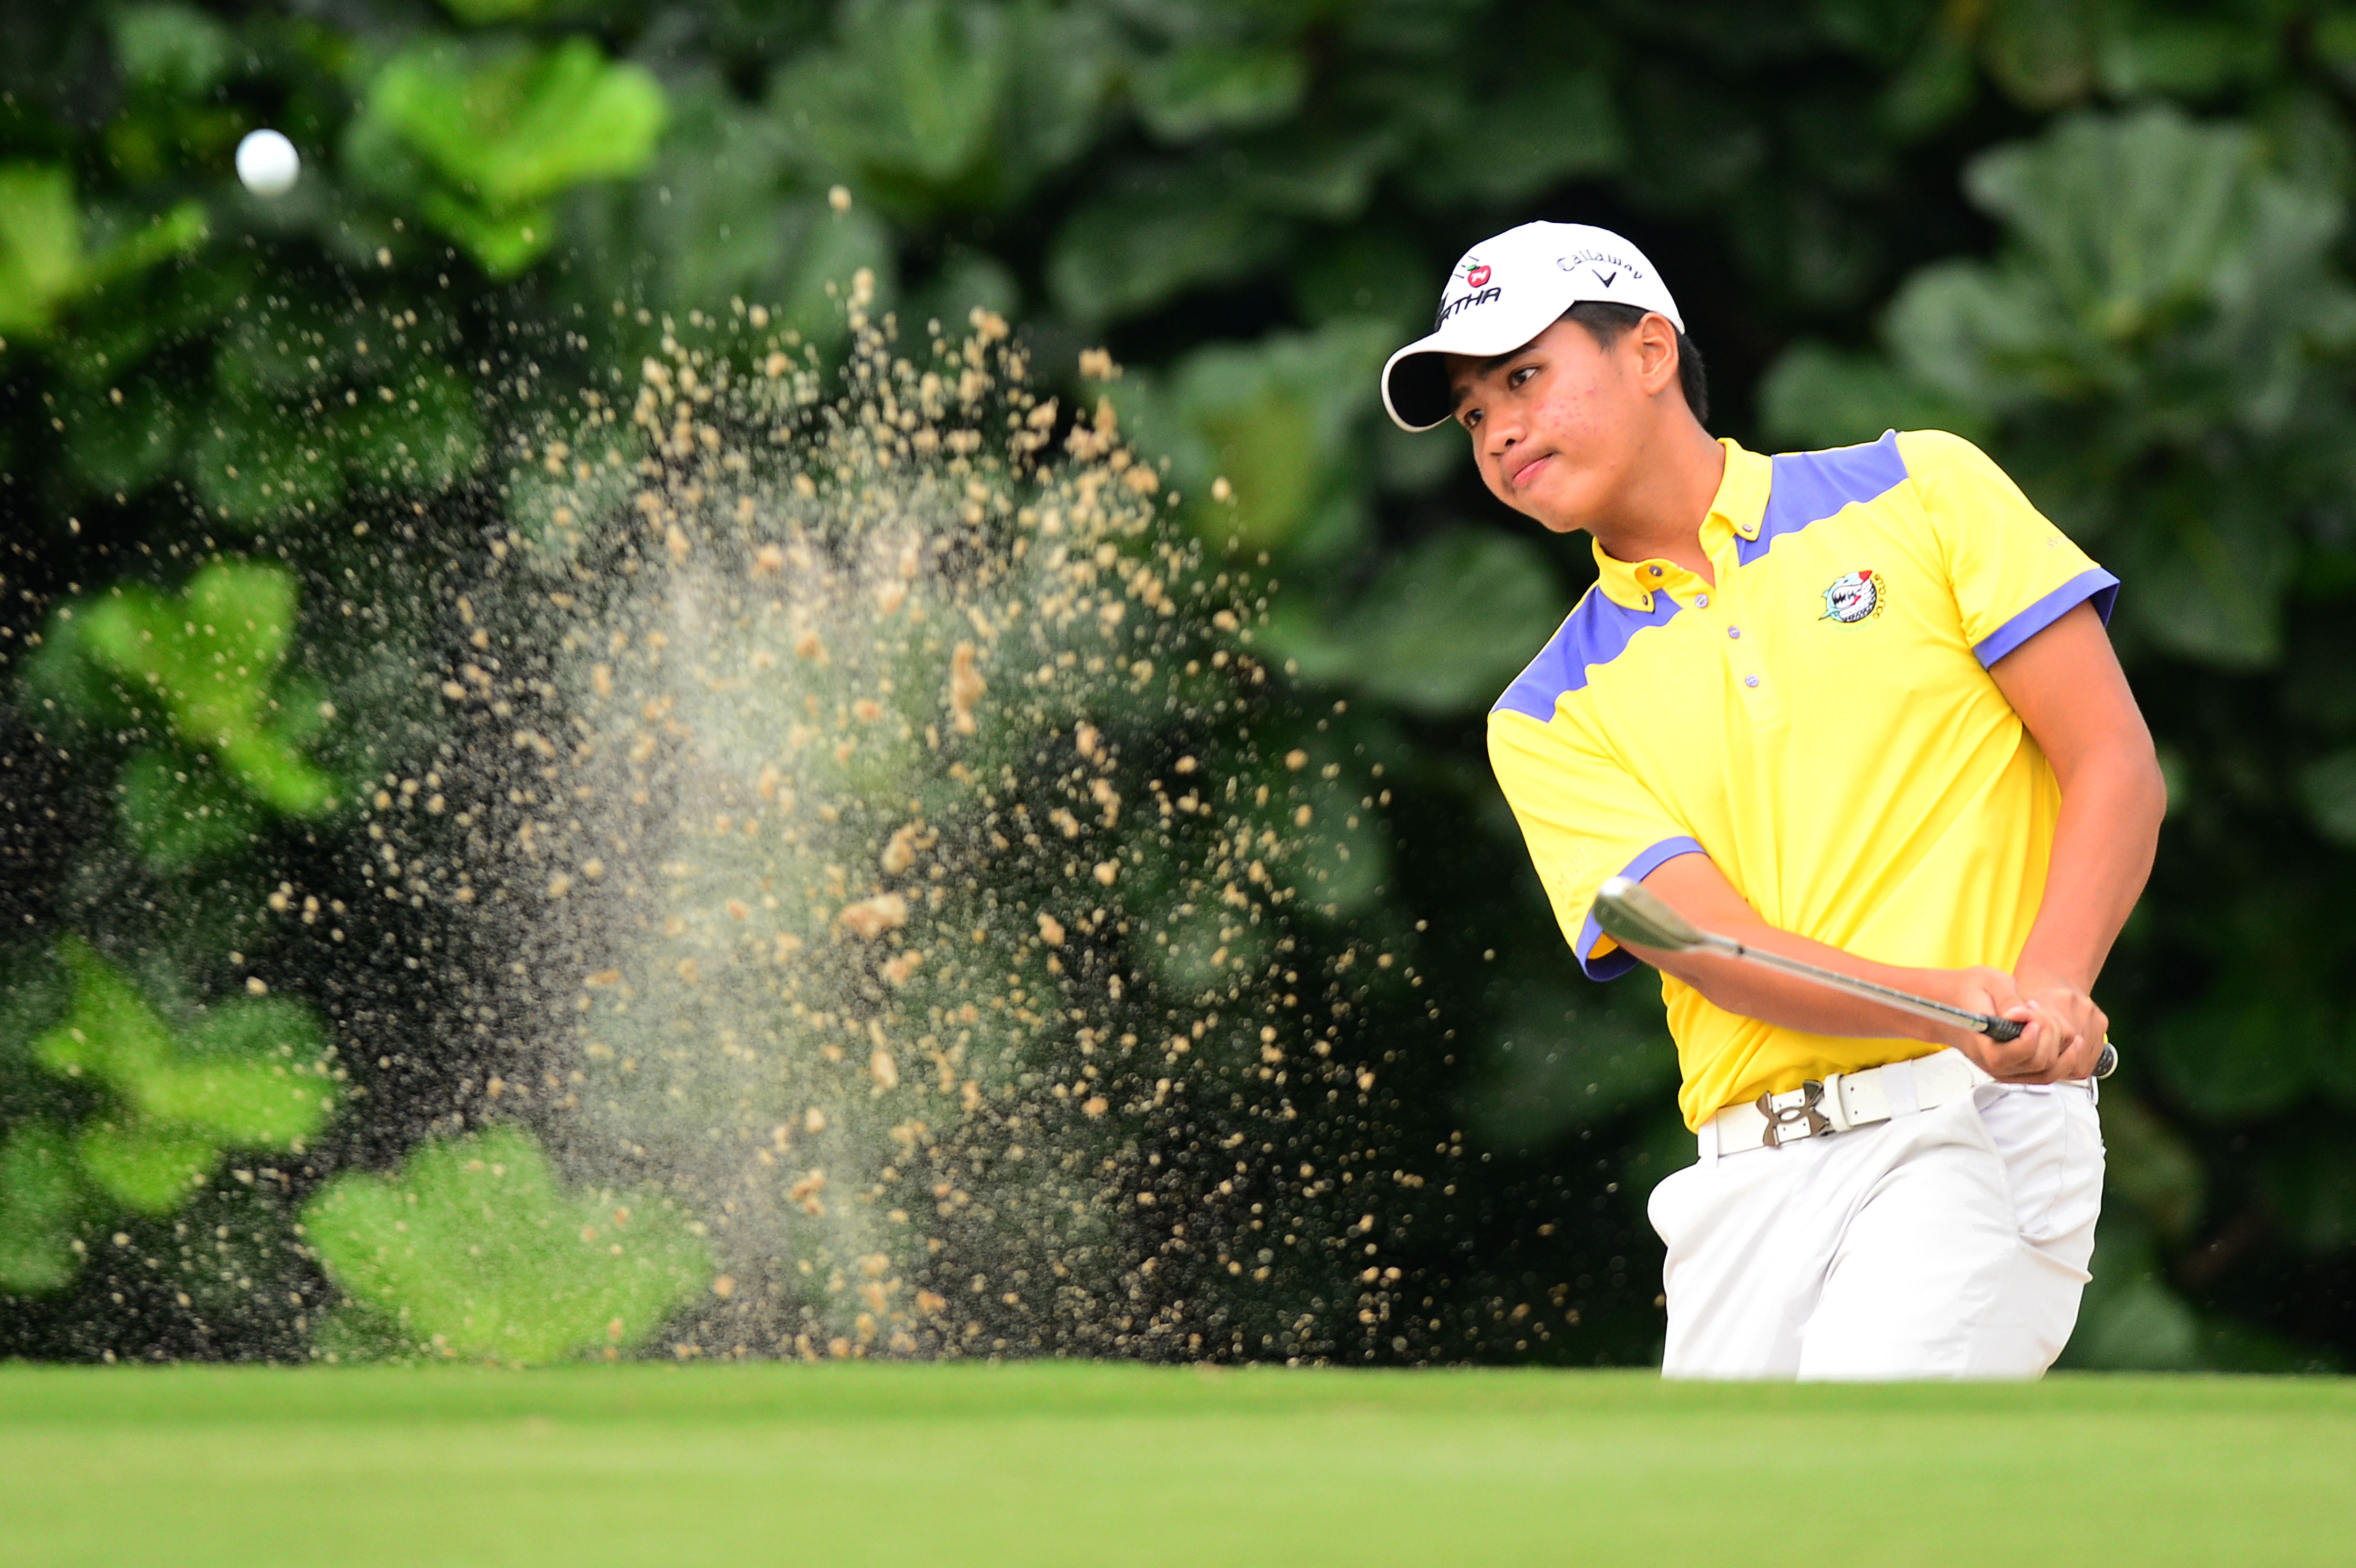 JAKARTA 18 November 2016 : Almay Rayhan Yaqutah of Indonesia pictured during the round two of the Bank BRI-JCB Indonesia Open 2016 at the Pondok Indah Golf Club, Jakarta, INDONESIA. Pix by Arep KULAL/Asian Tour